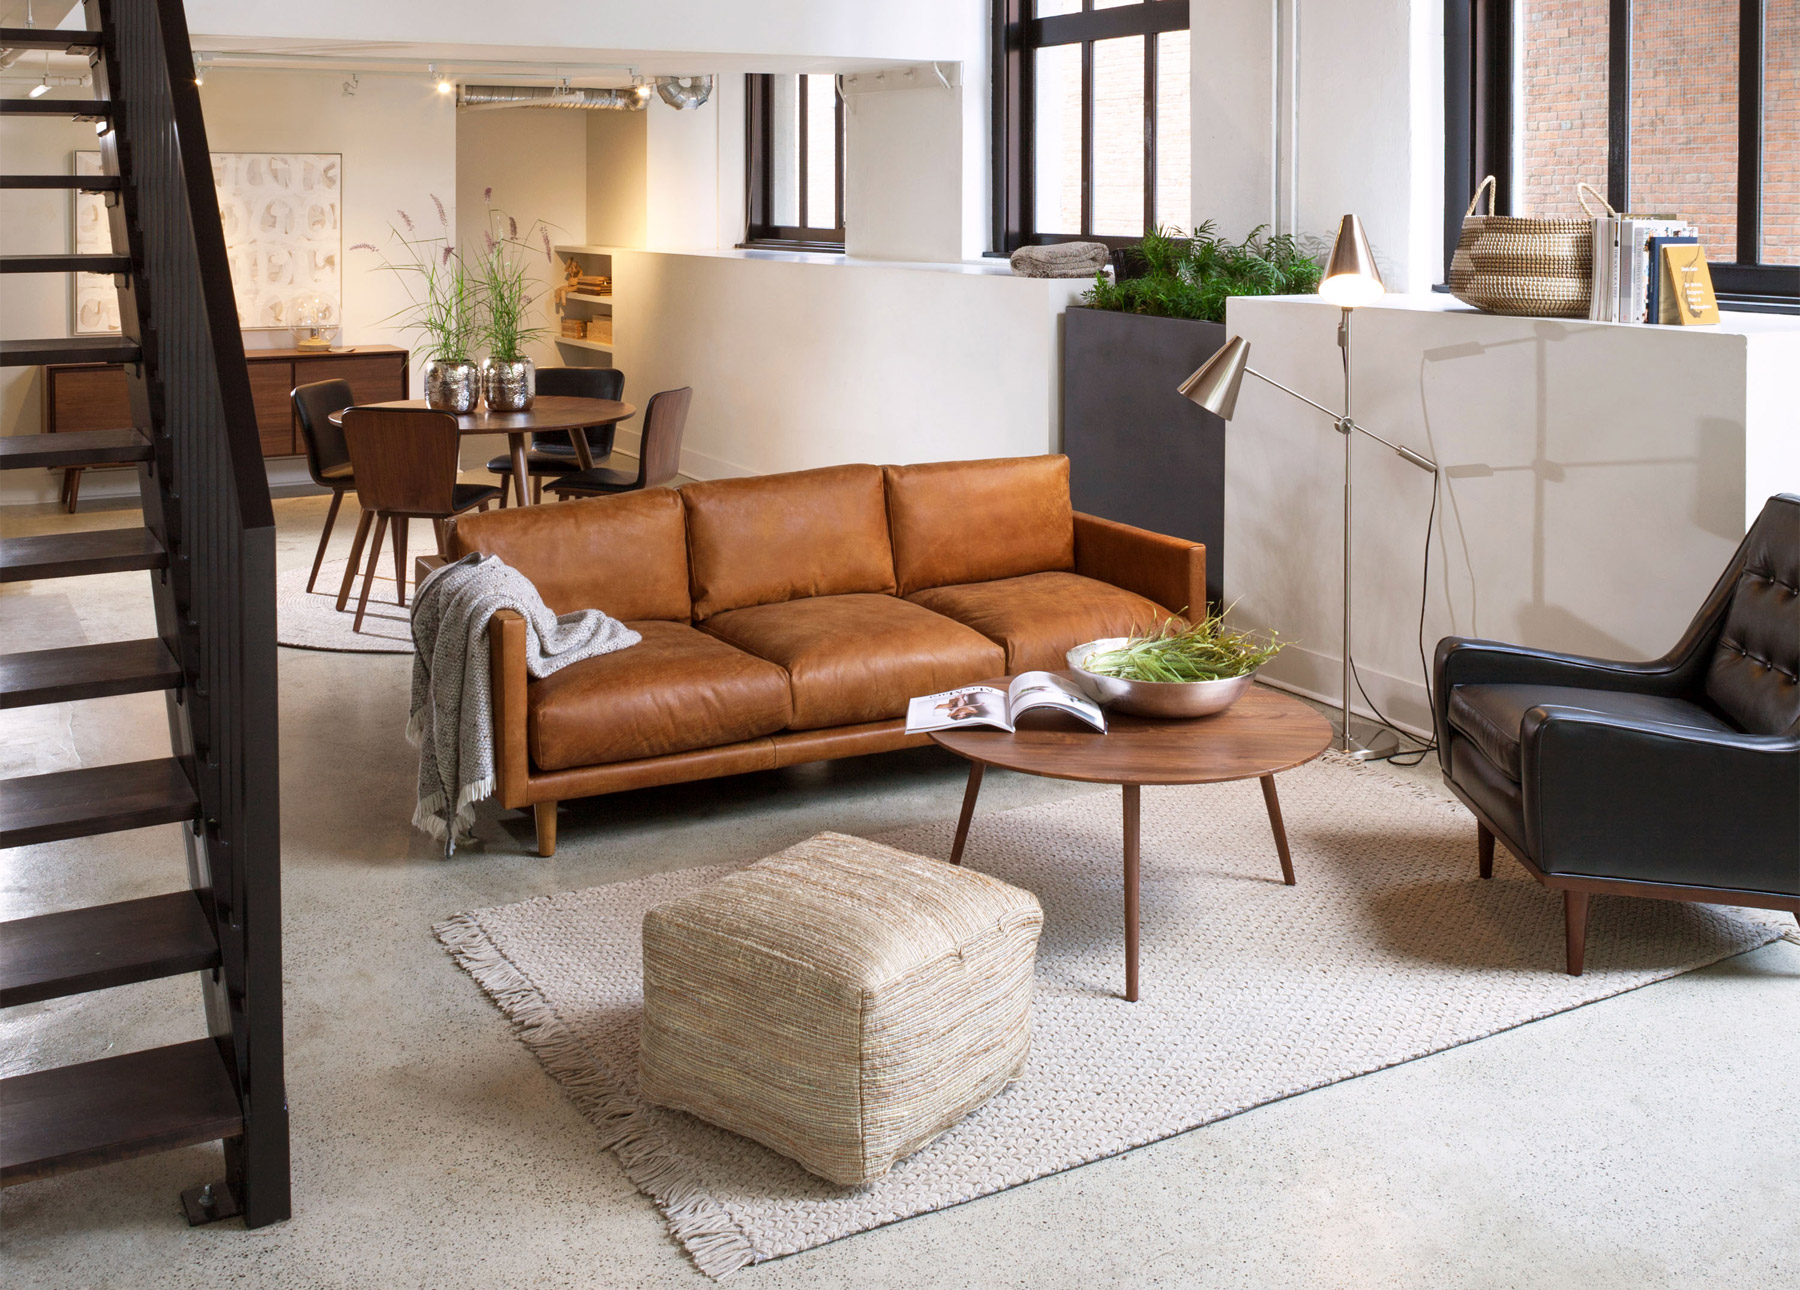 Living Room Spaces Choosing The Right Furniture For Small Spaces Articulate